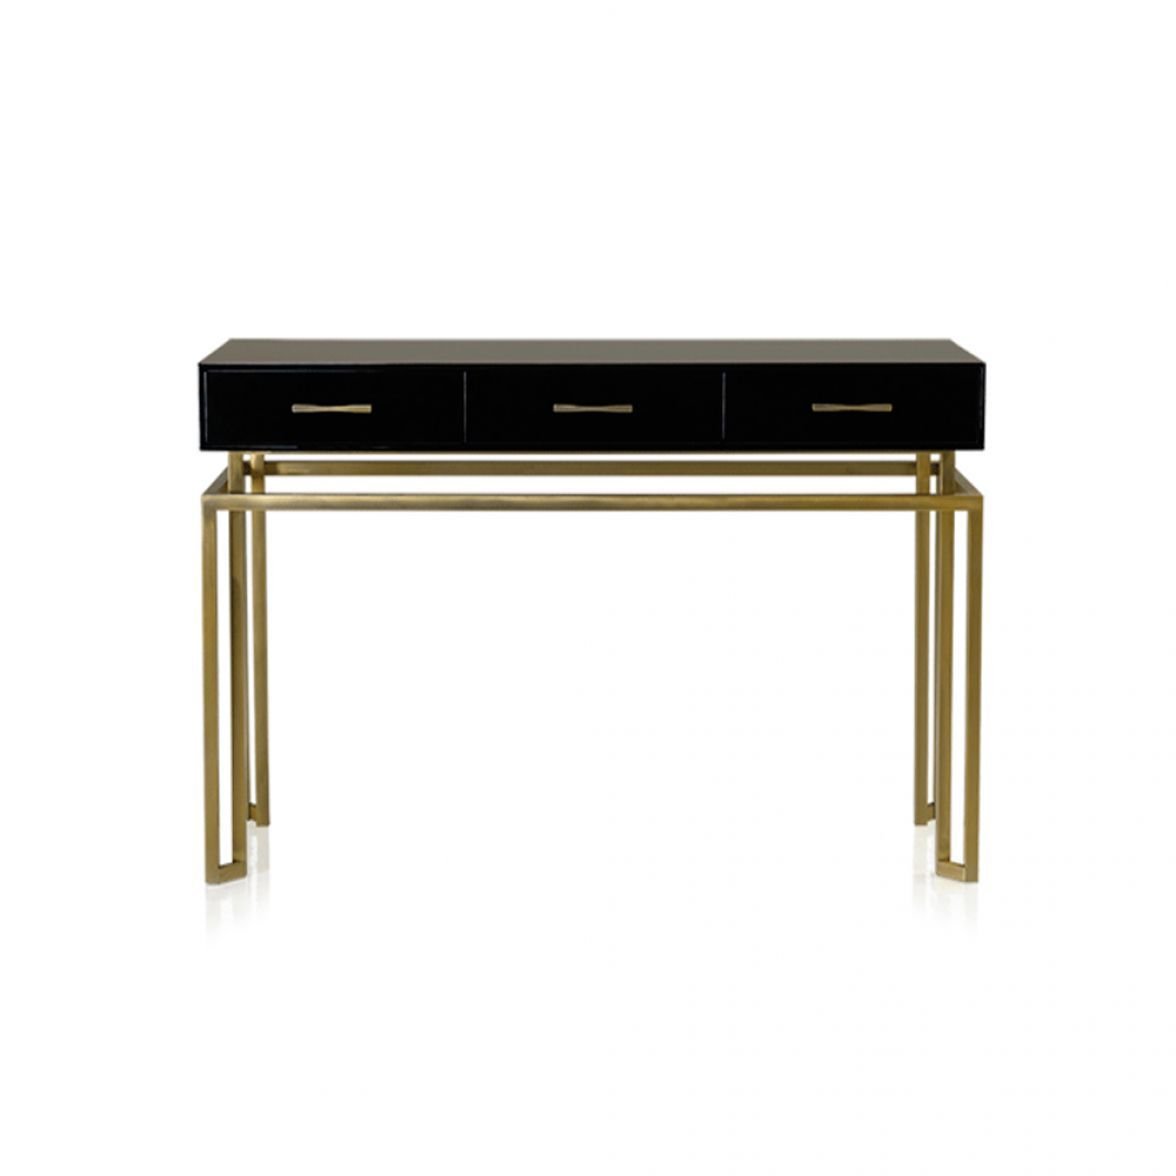 Oro console with drawers